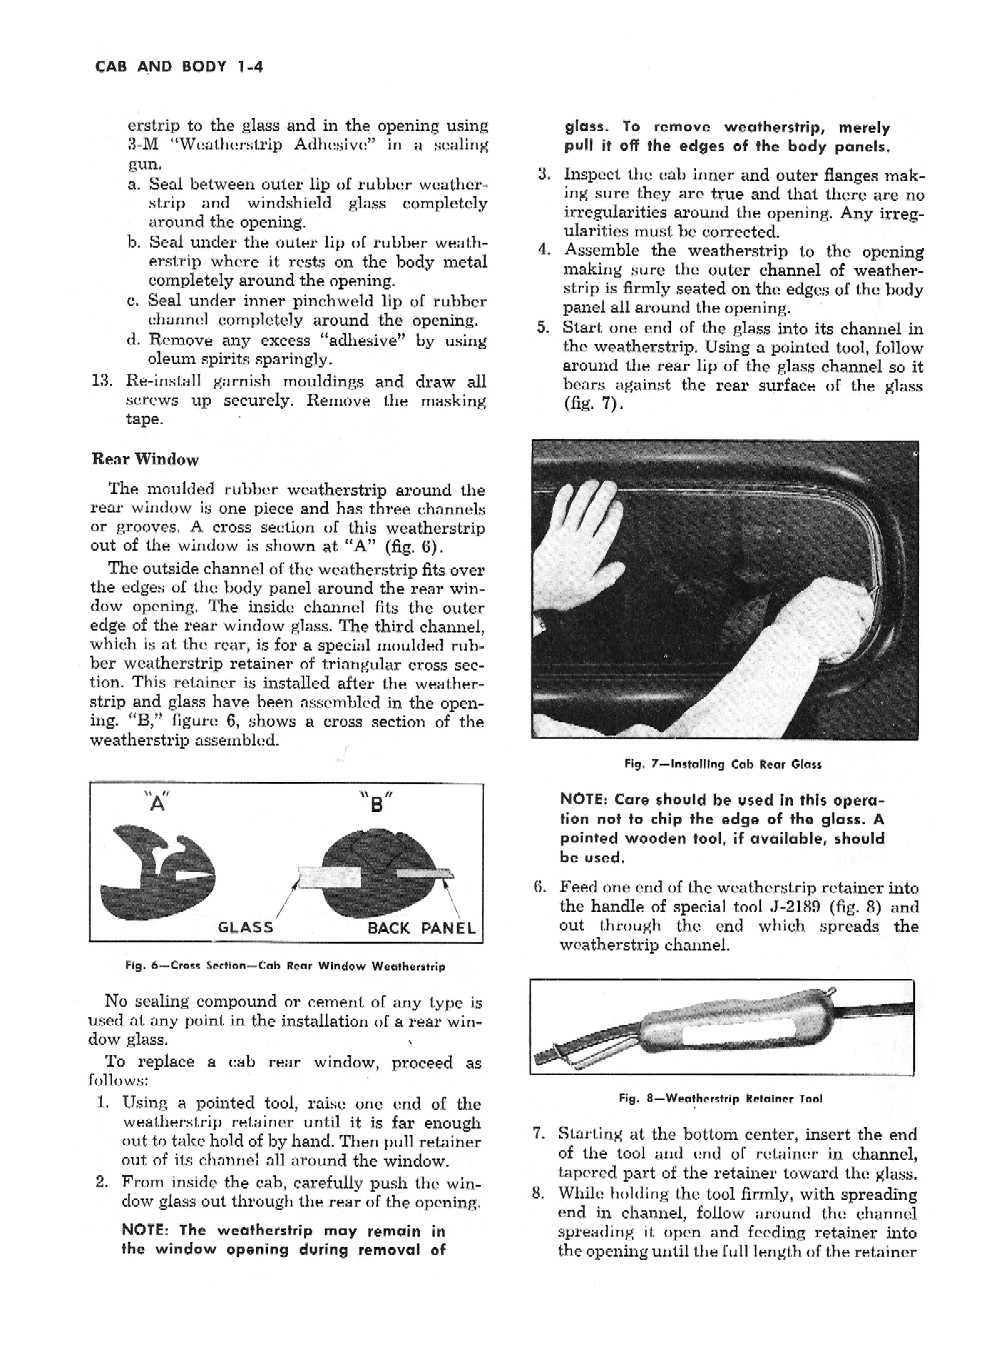 1954 Chevrolet Truck Shop Manual